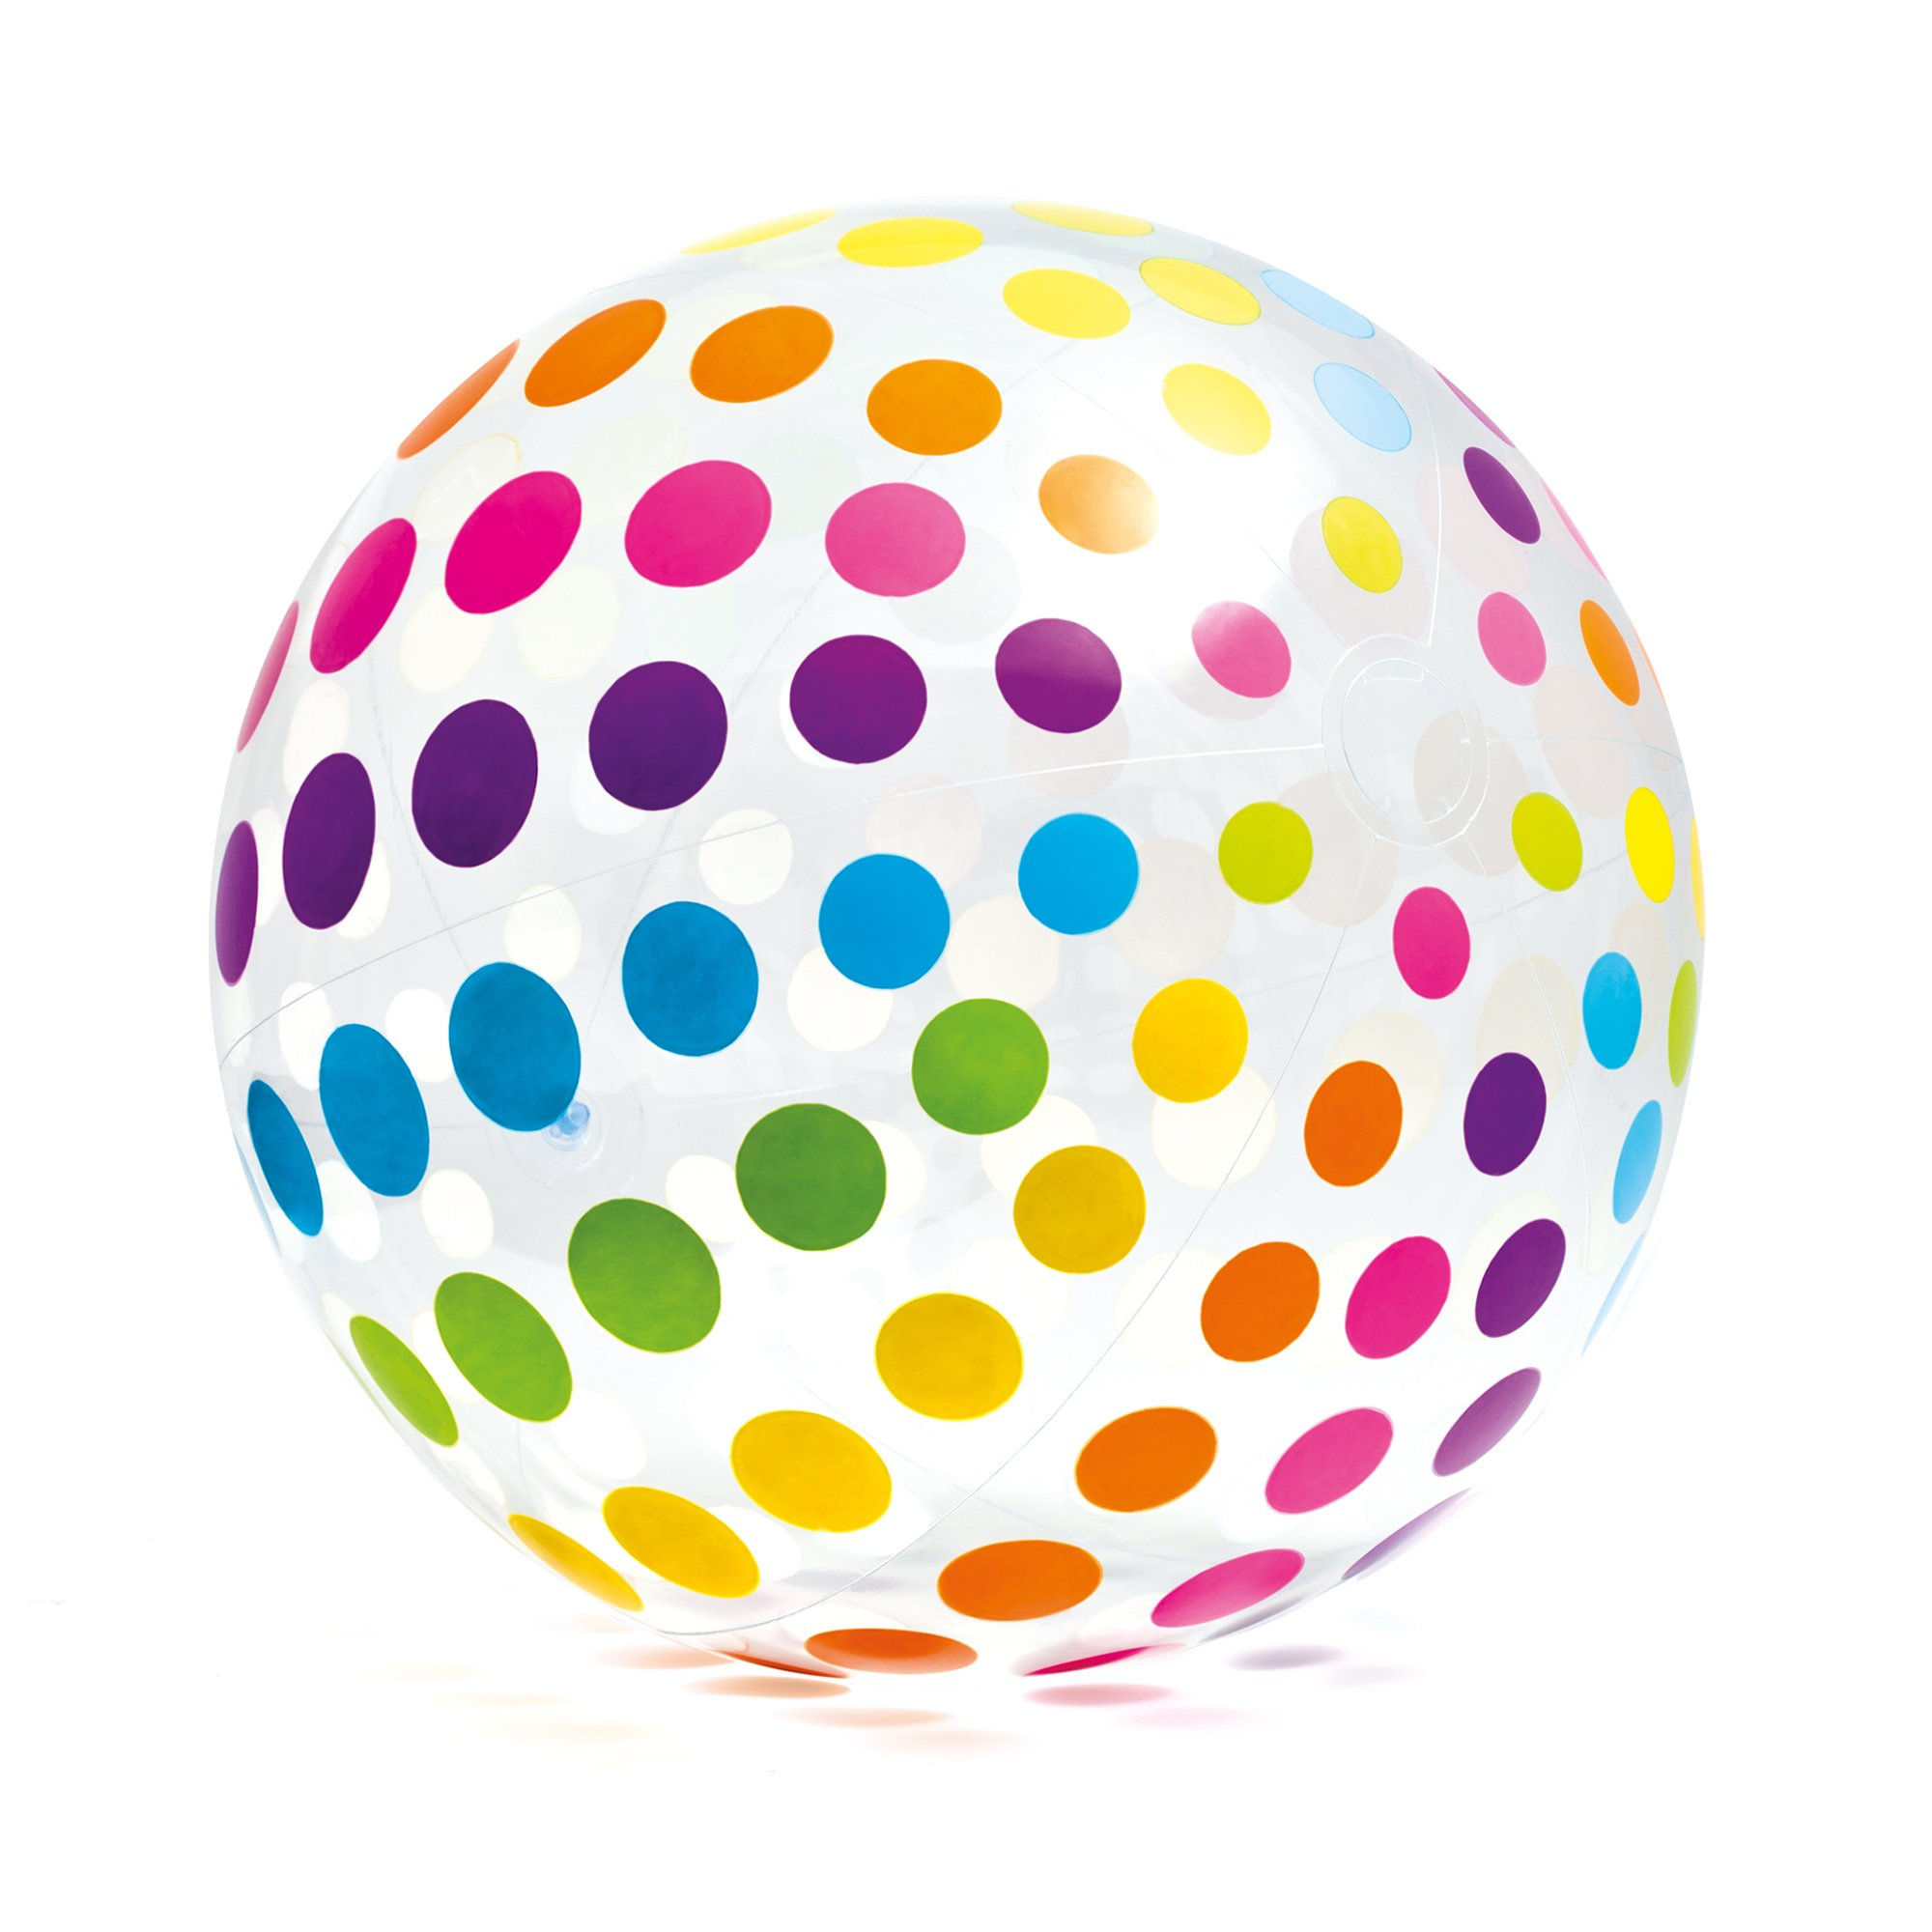 Intex 72-inch Giant Colorful Beach Ball by Intex